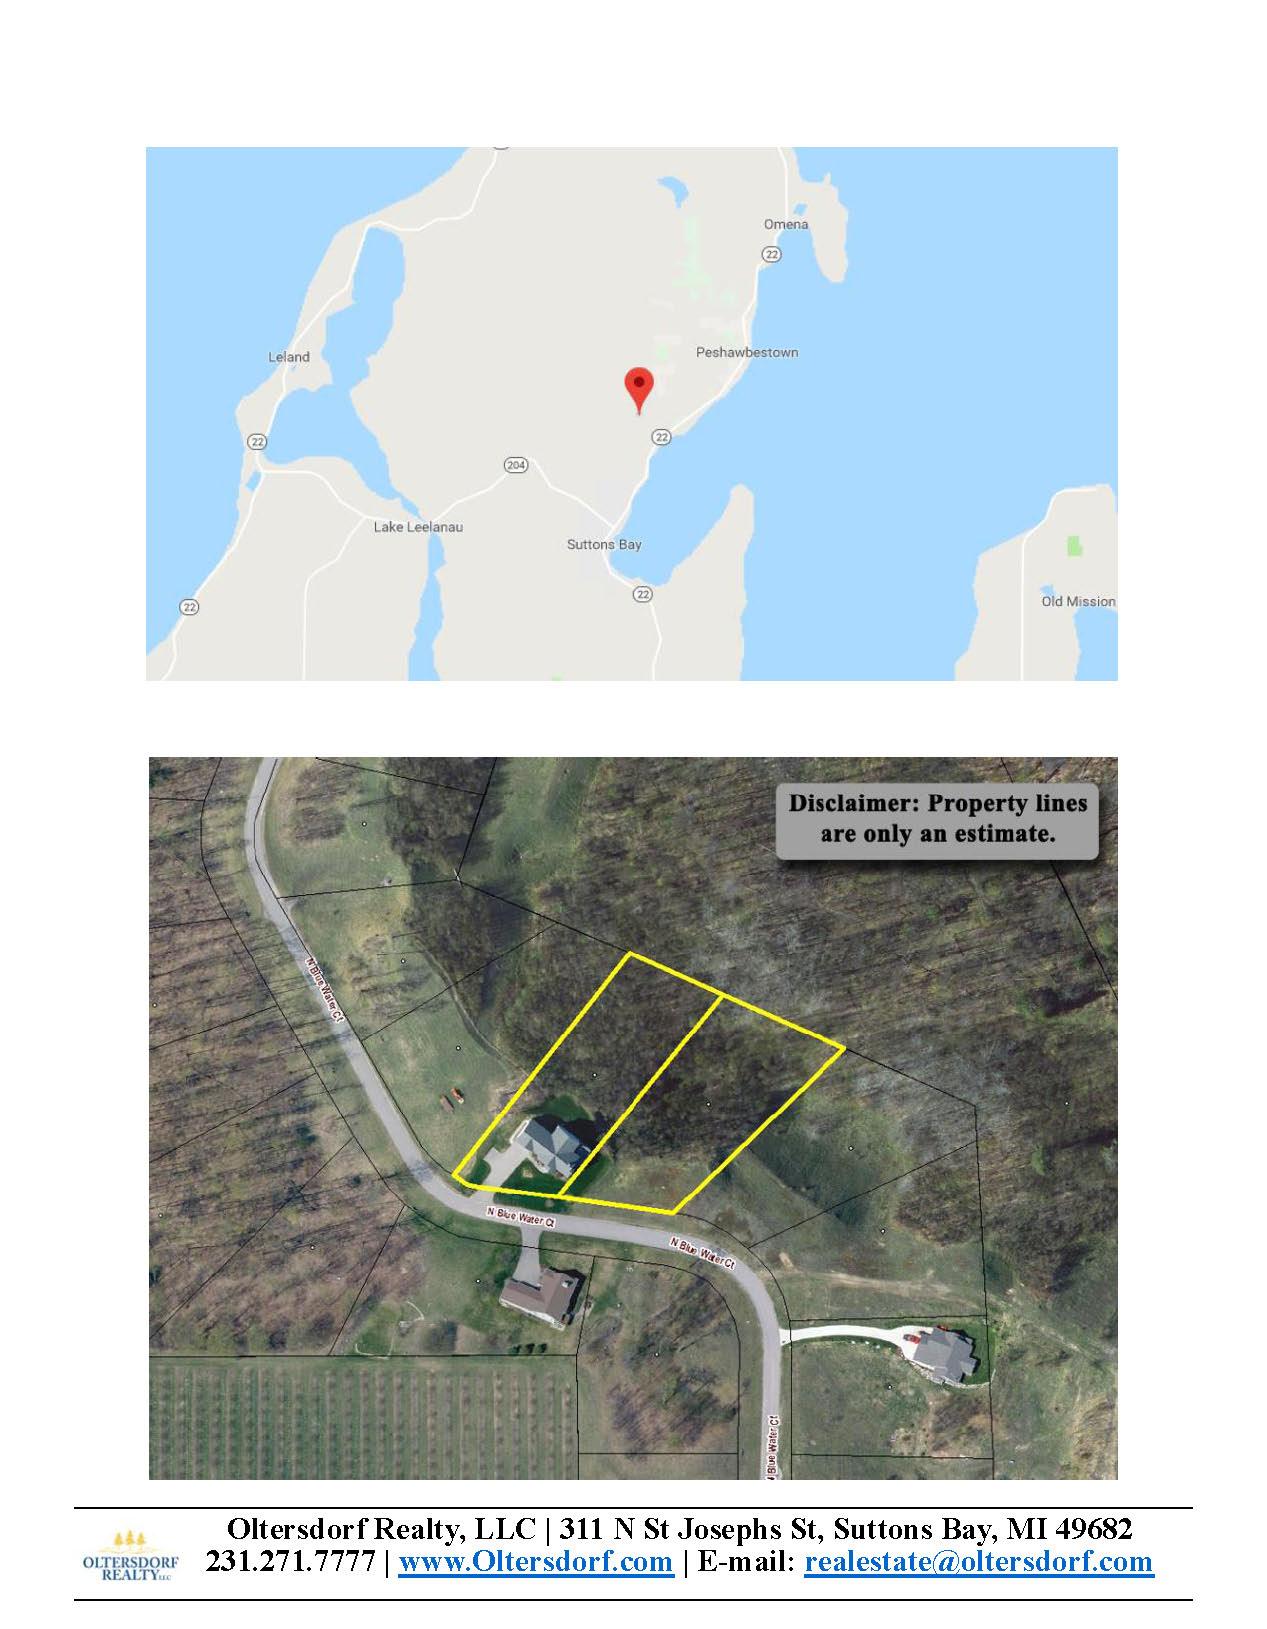 1900 N Blue Water Ct, Suttons Bay, MI – Ranch Home & Water Views - Marketing PAcket by Oltersdorf Realty LLC (9).jpg